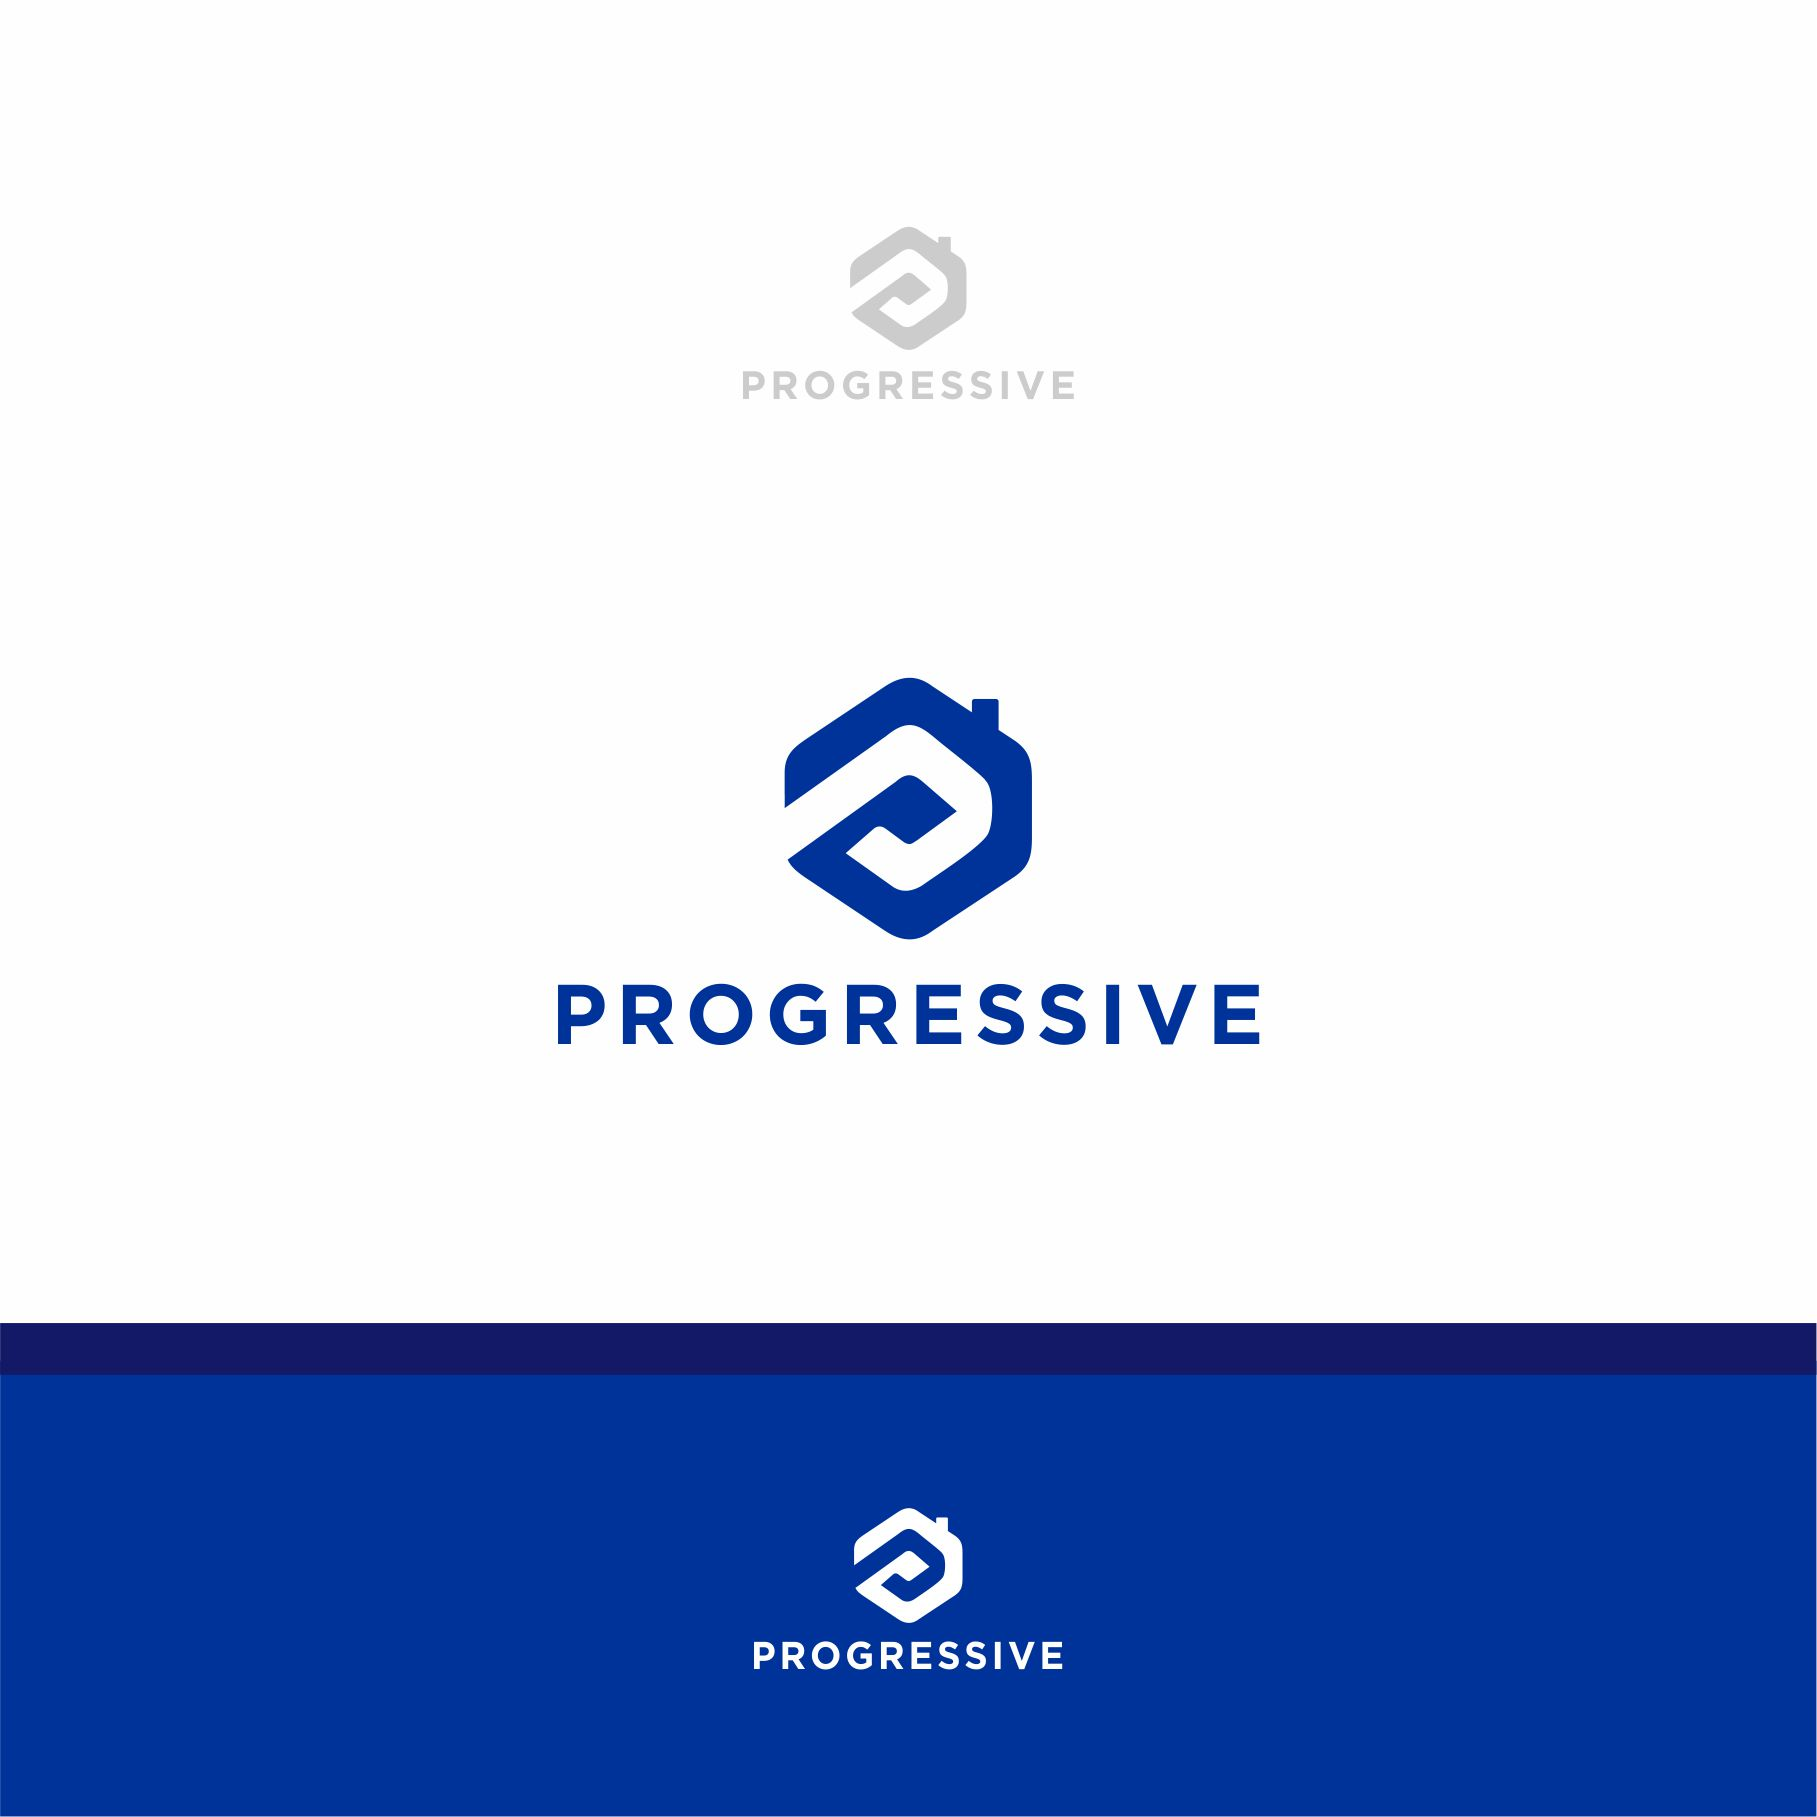 Logo Design by Raymond Garcia - Entry No. 198 in the Logo Design Contest Captivating Logo Design for Progressive Business.